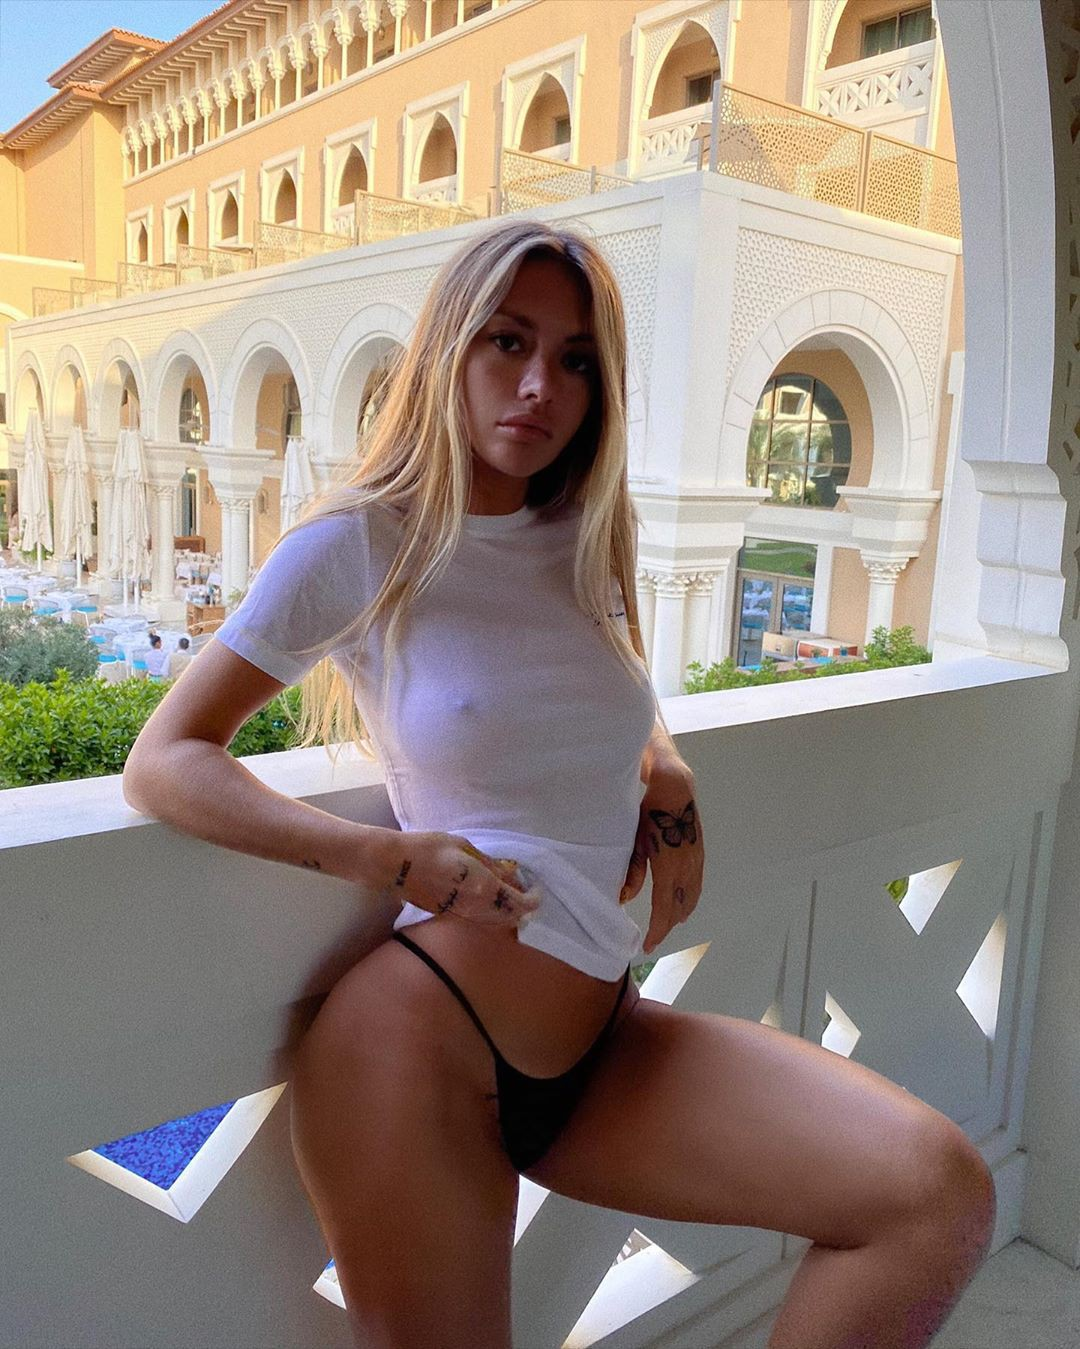 Pauline Tantot female thighs, legs pic, blond hairstyle